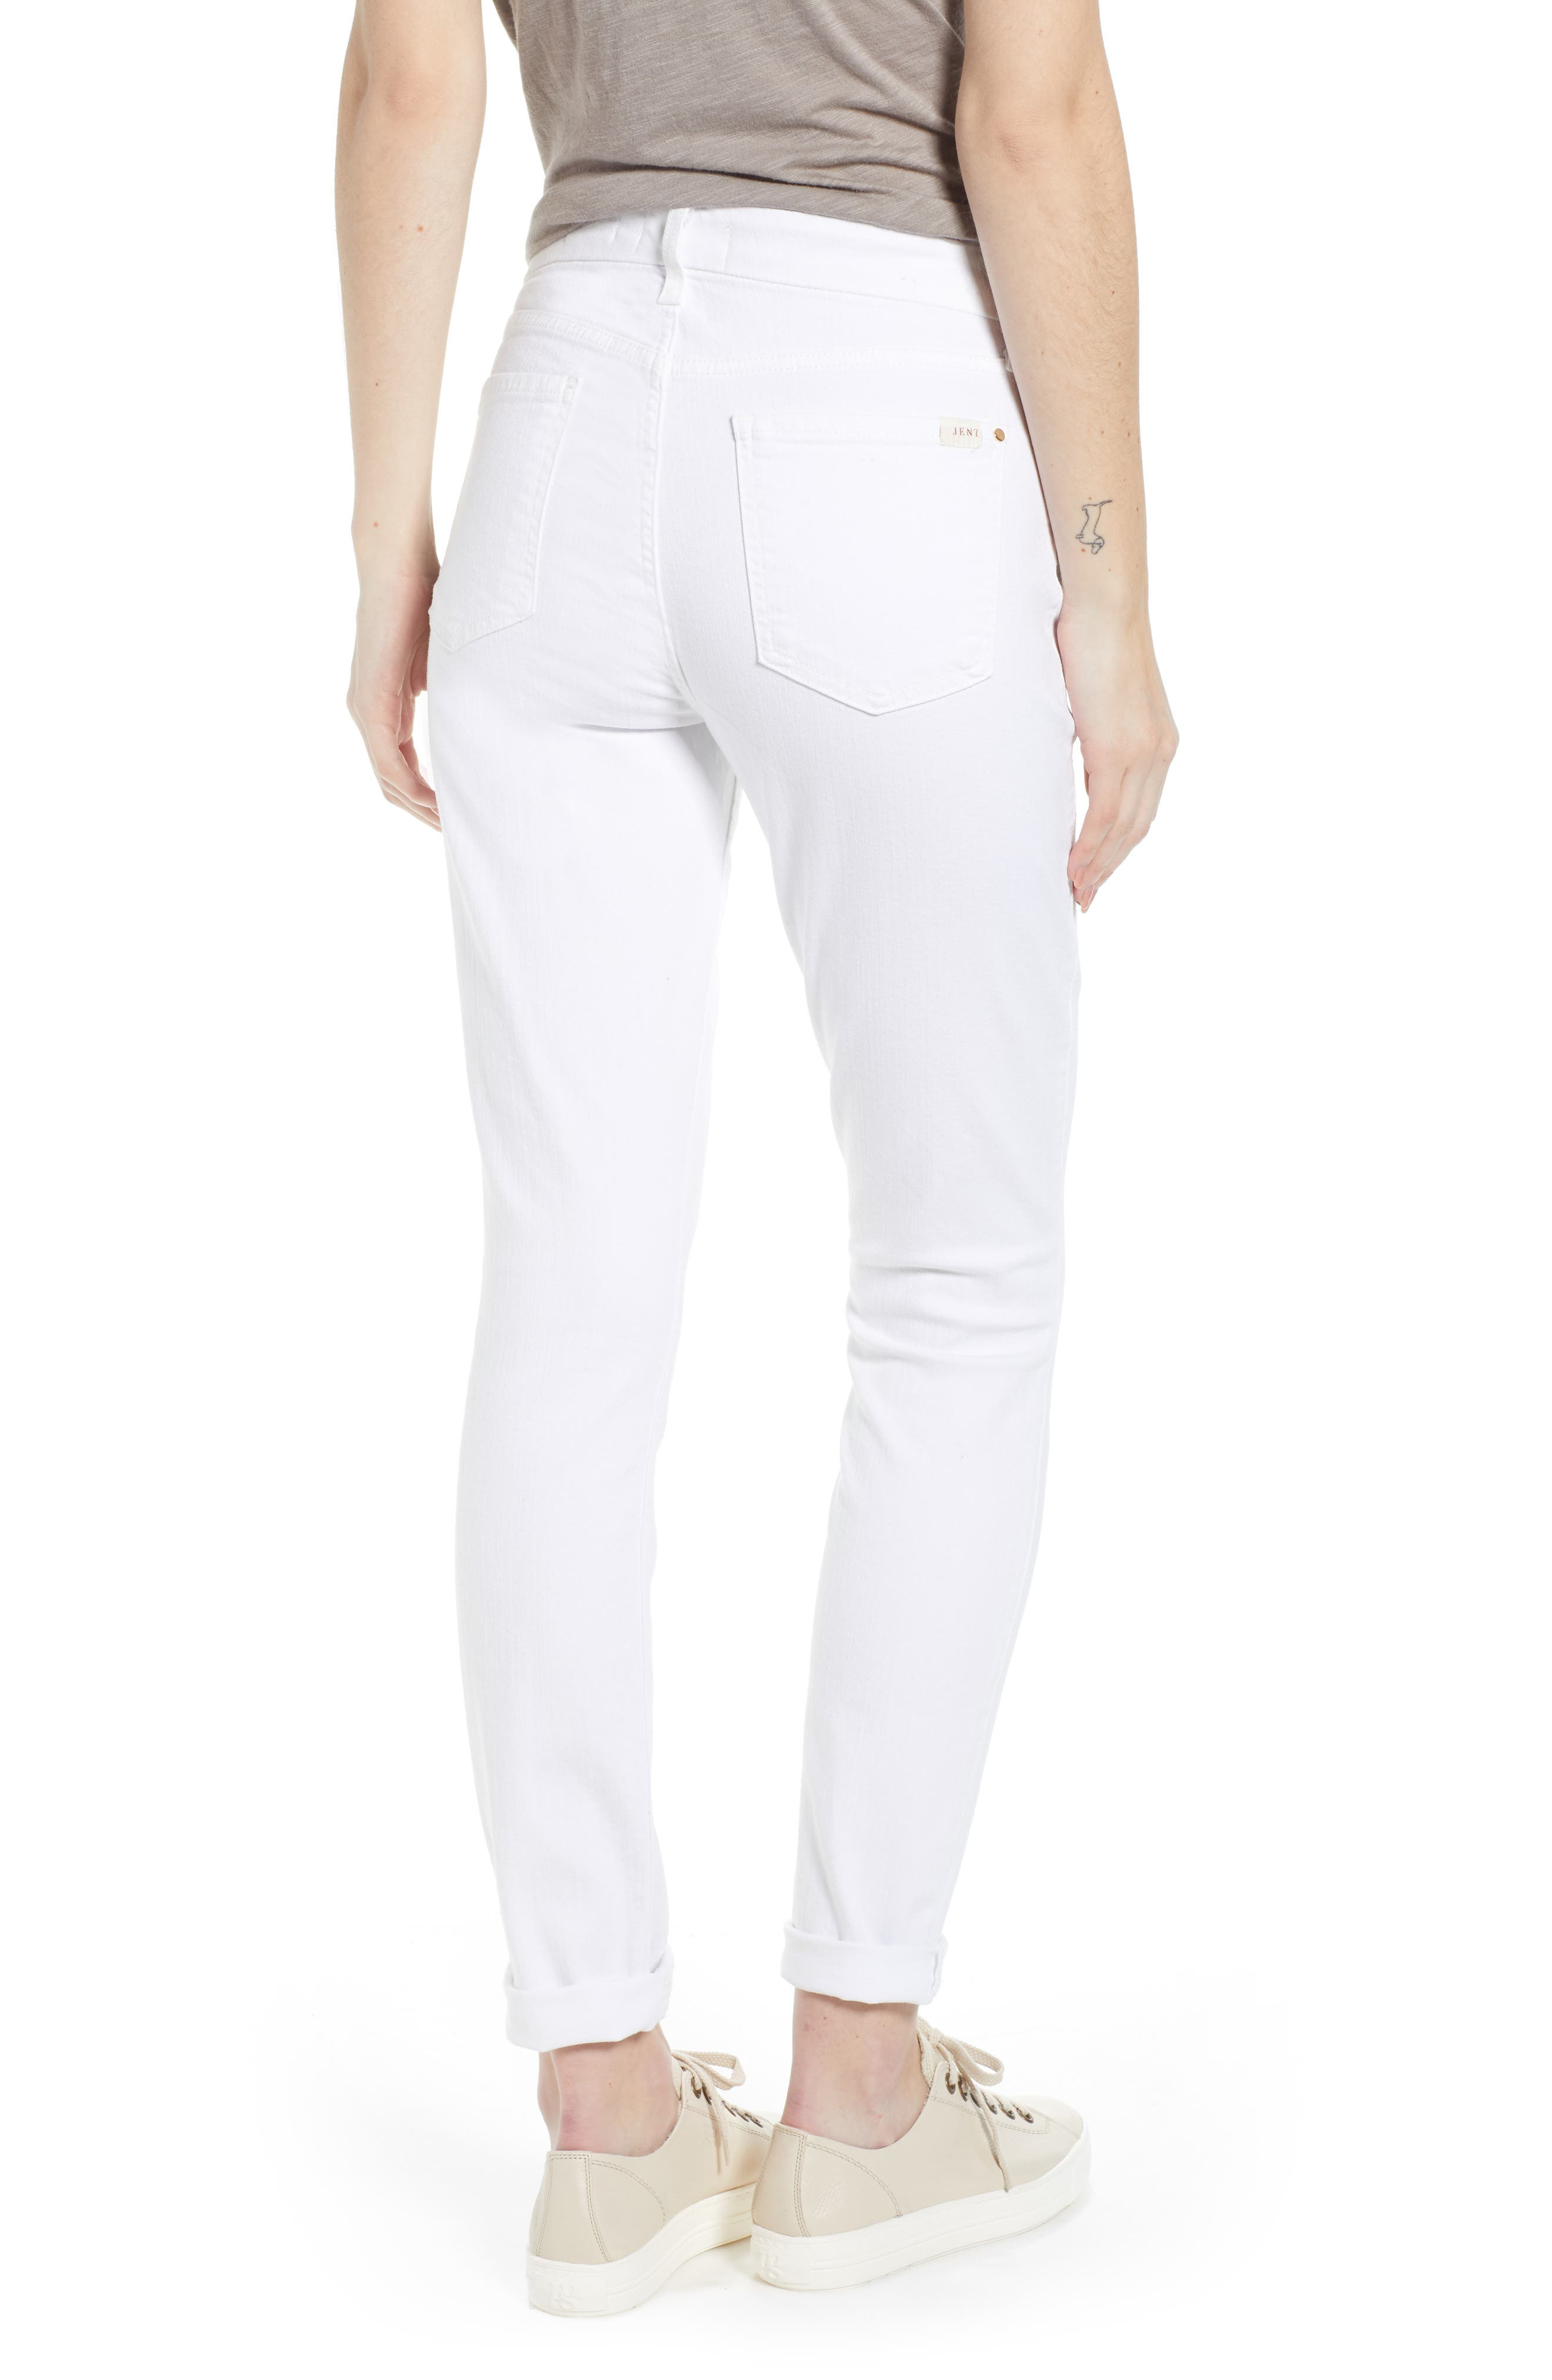 JEN7 BY 7 FOR ALL MANKIND,                             Stretch Skinny Jeans,                             Alternate thumbnail 2, color,                             WHITE